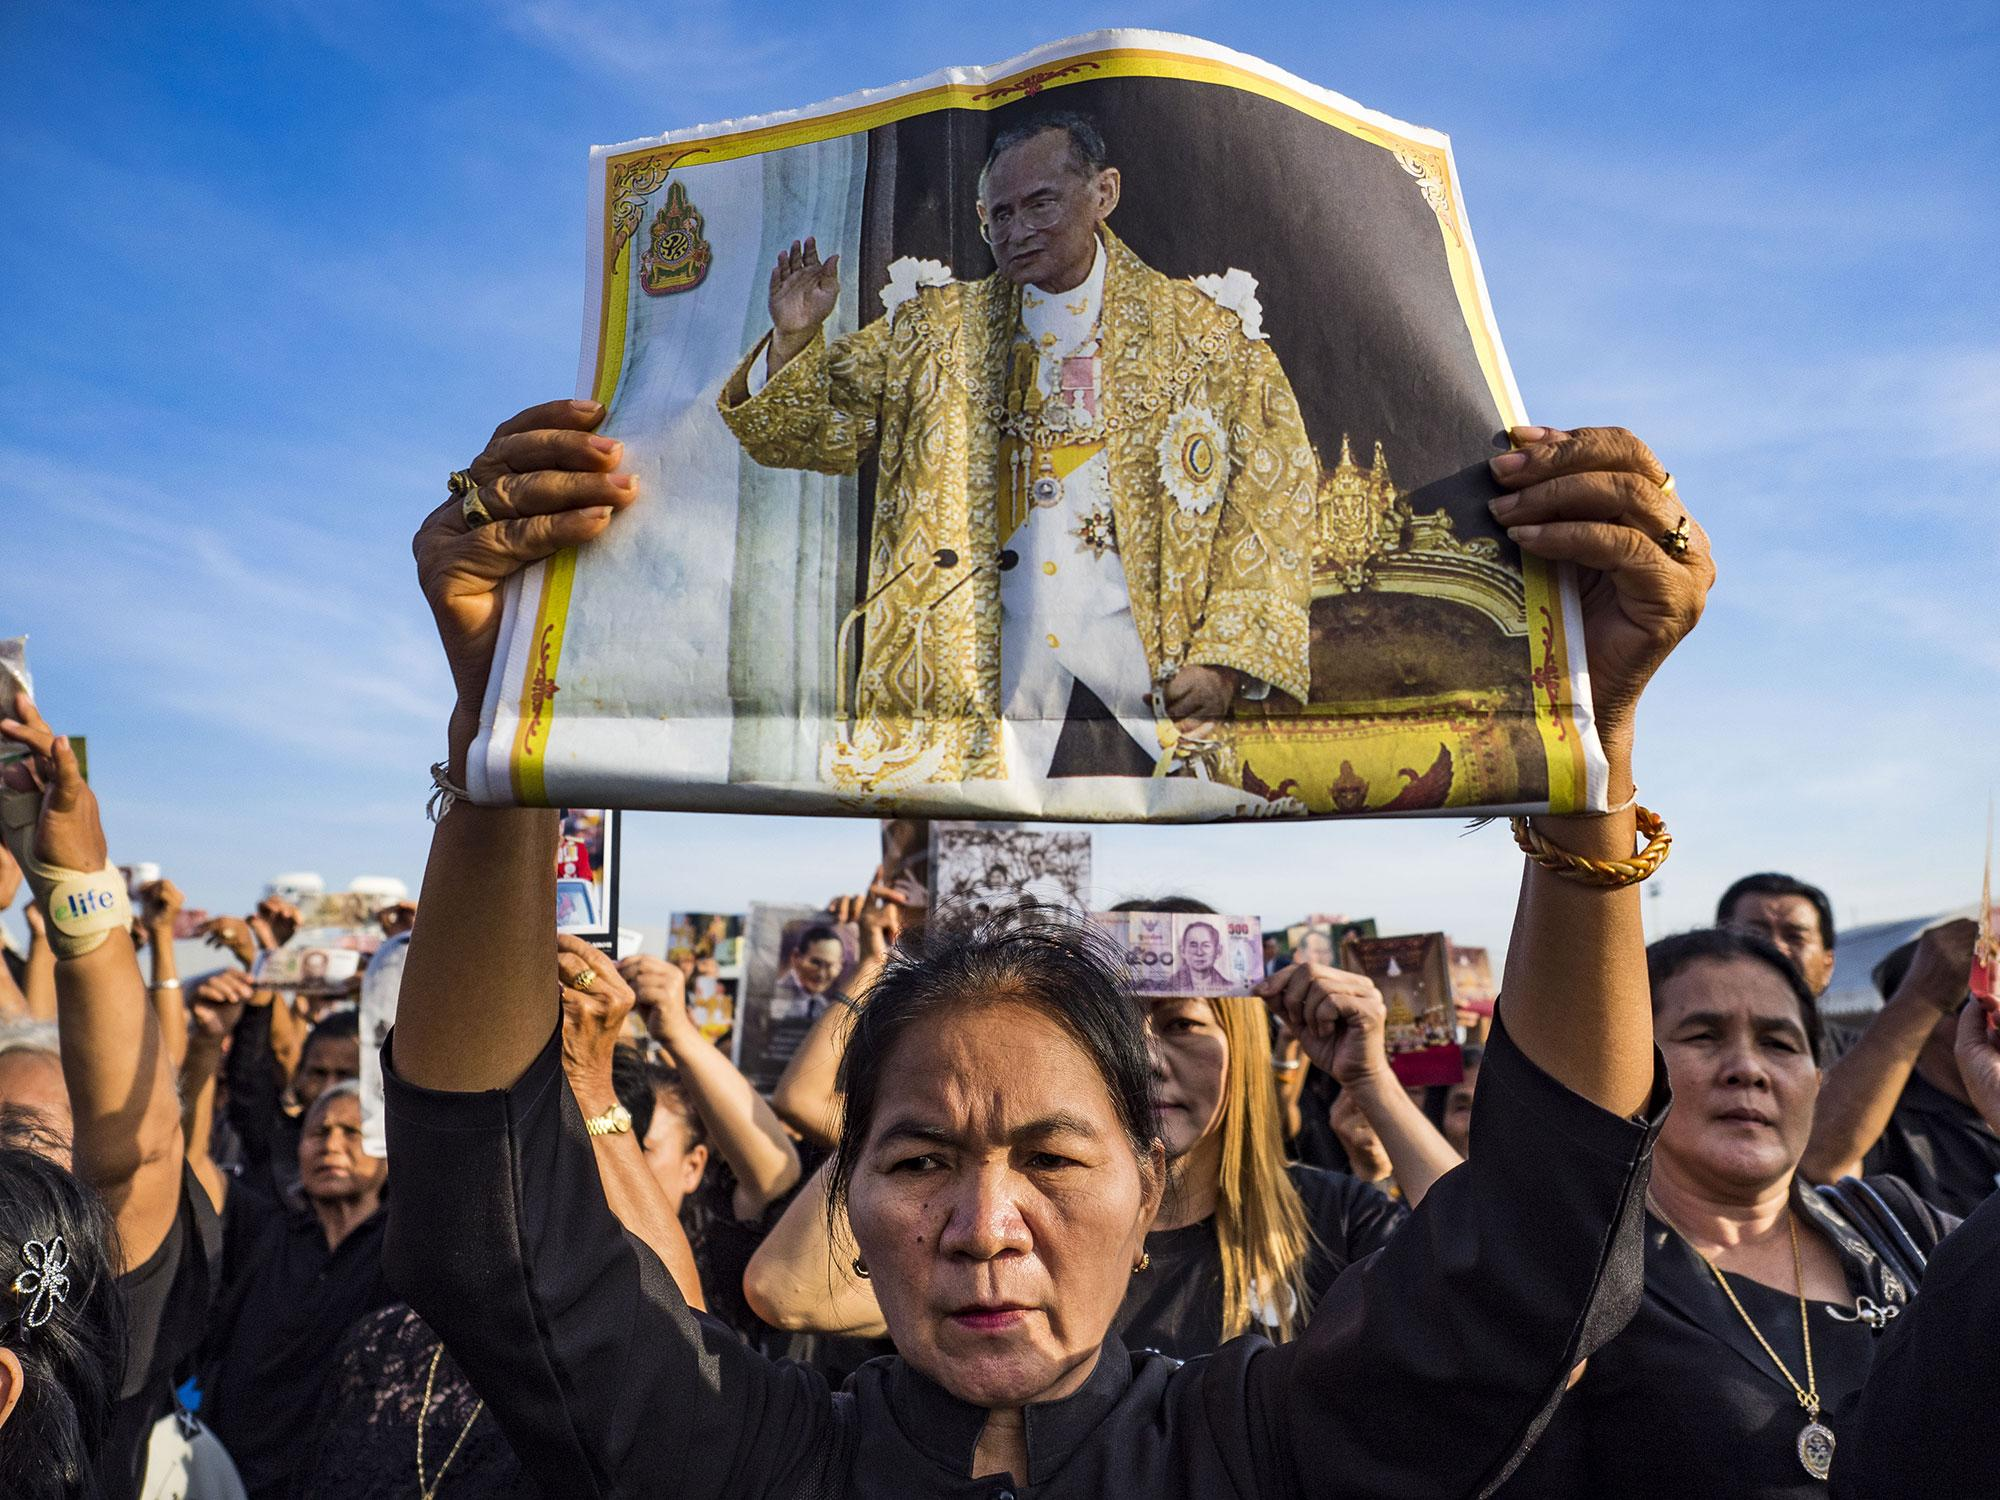 <p>People hold up photos of the late King of Thailand during a ceremony to honor His Majesty at Sanam Luang on November 22, 2016 in Bangkok, Thailand. Hundreds of thousands of Thais gathered across Thailand Tuesday to swear allegiance to Bhumibol Adulyadej, the Late King of Thailand, in a ceremony called Ruam Phalang Haeng Kwam Phakdi (the United Force of Allegiance). At Sanam Luang, the Royal Parade Ground, and location of most of the mourning ceremonies for the late King, people paused to honor His Majesty by singing the Thai national anthem and the royal anthem. (Jack Kurtz via ZUMA Wire) </p>